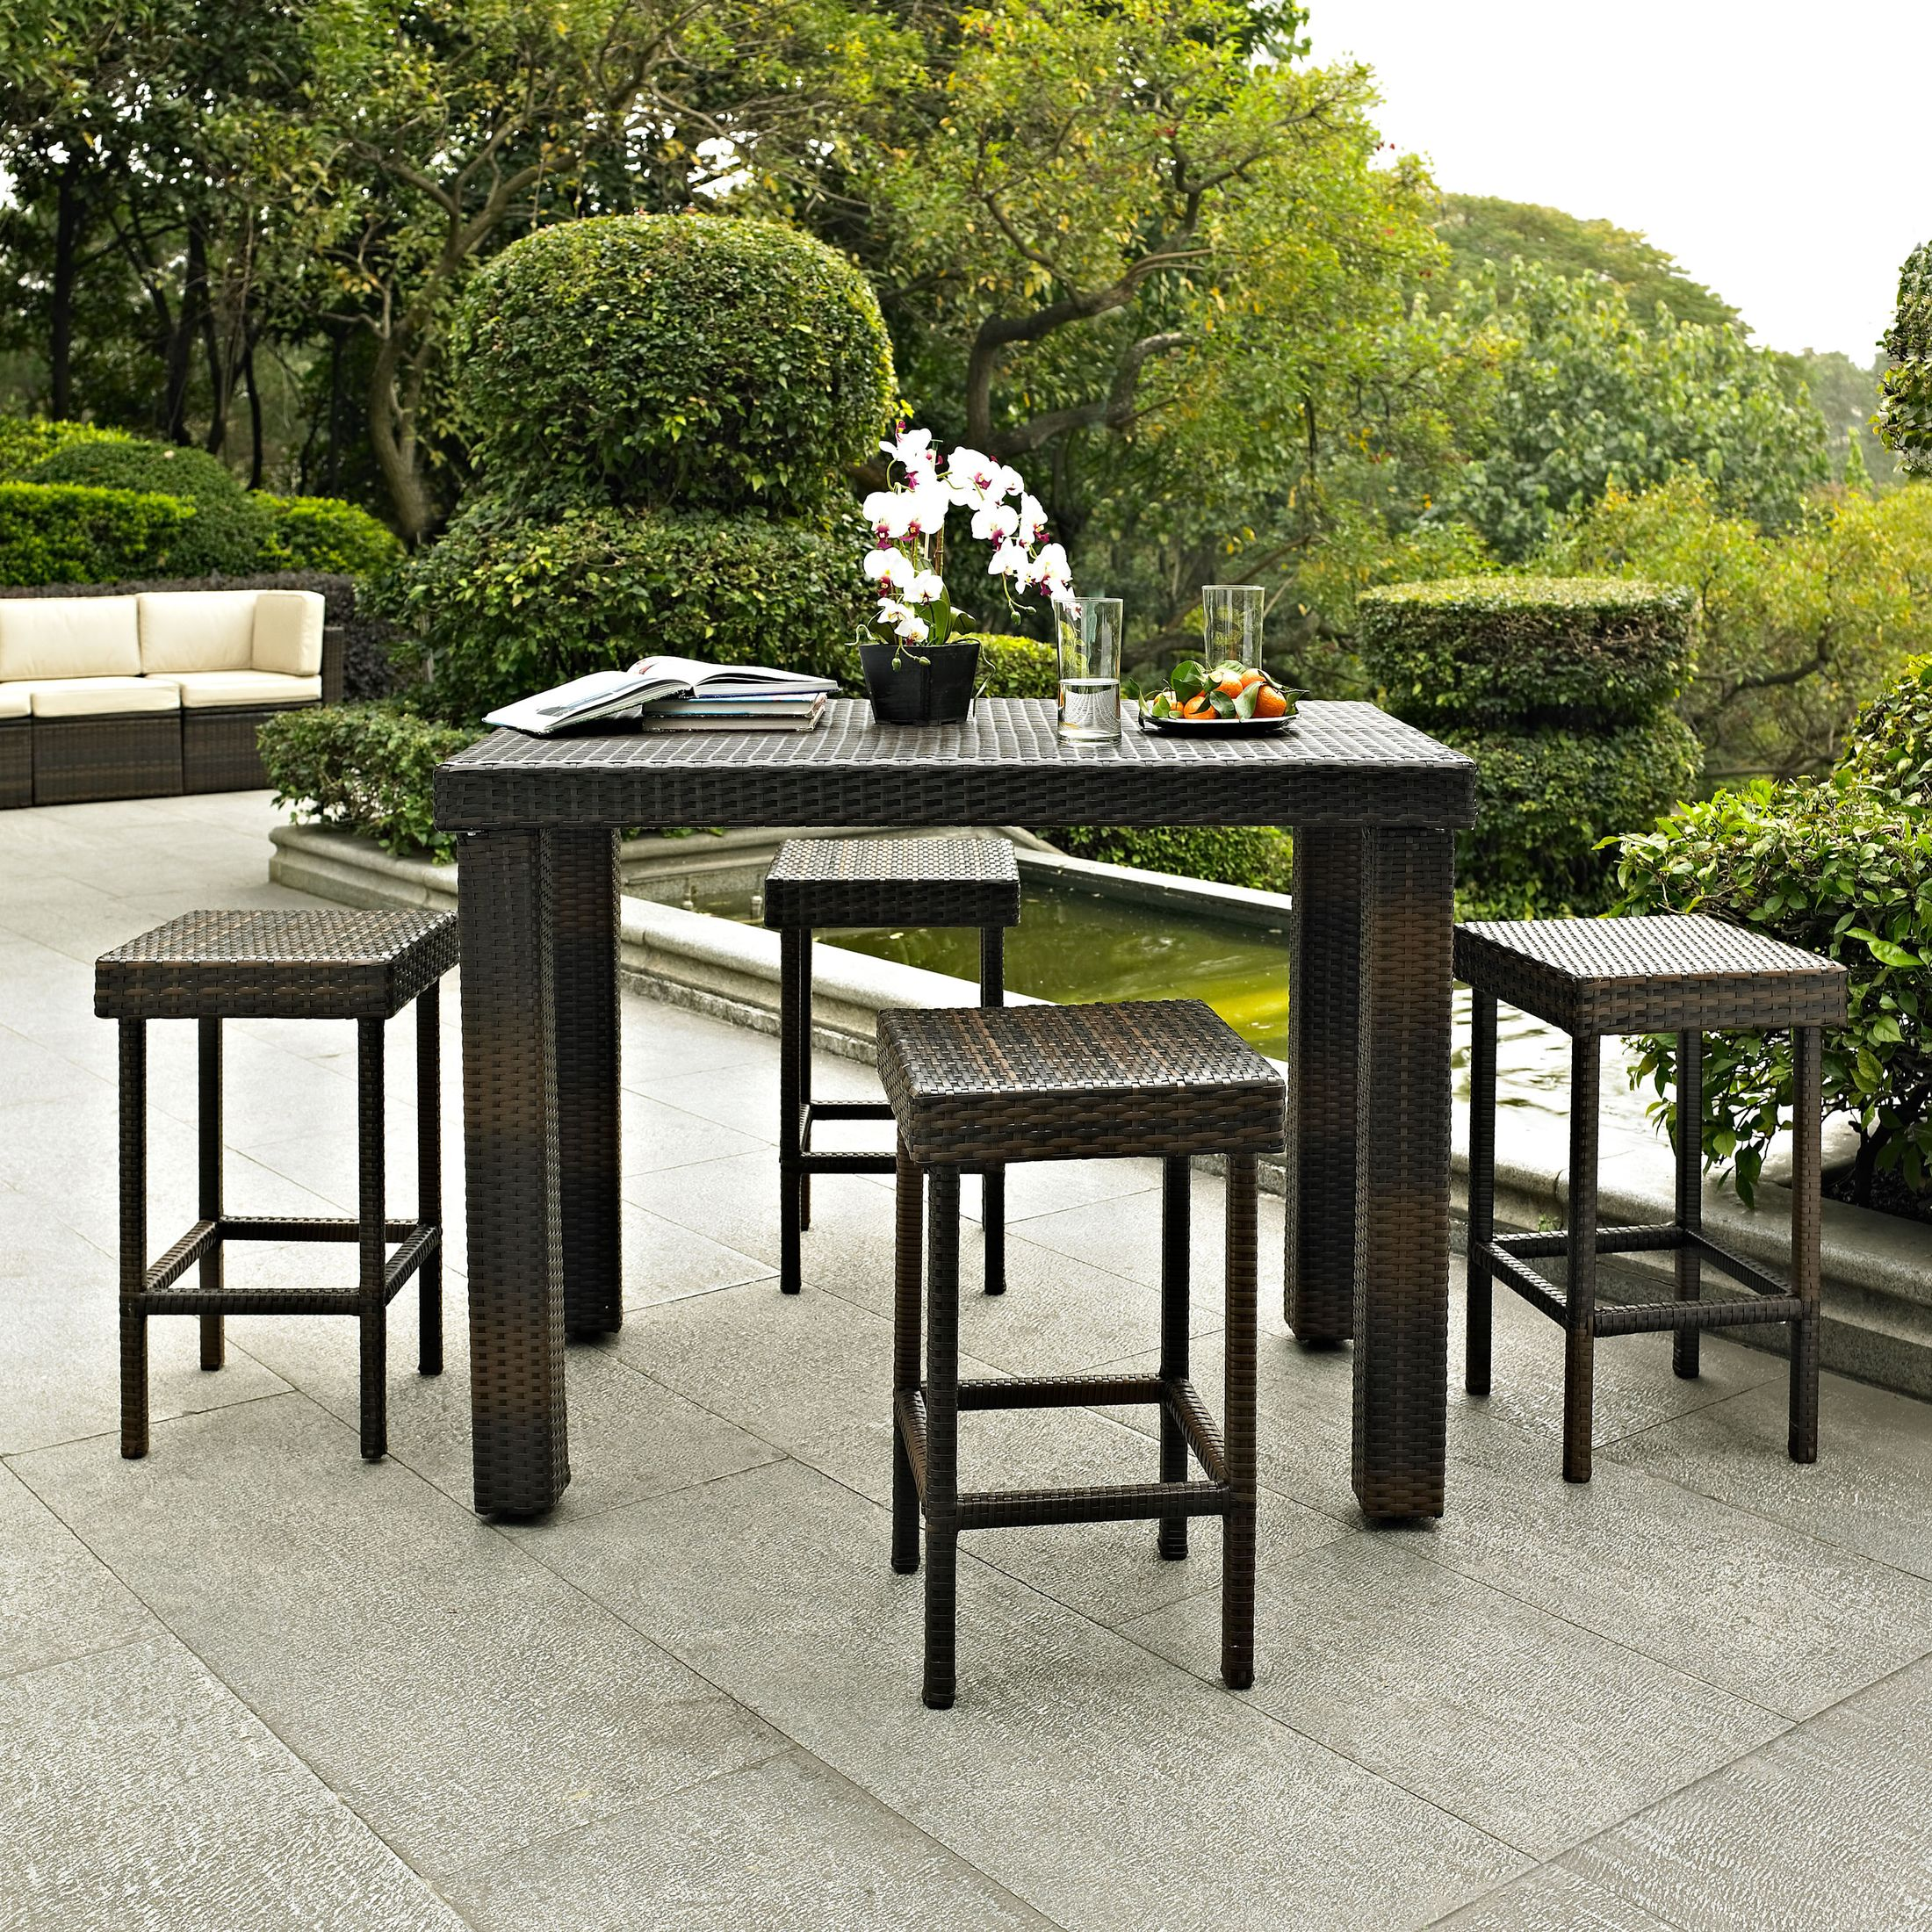 Outdoor Furniture - Aldo Outdoor Counter-Height Dining Table and 4 Stools